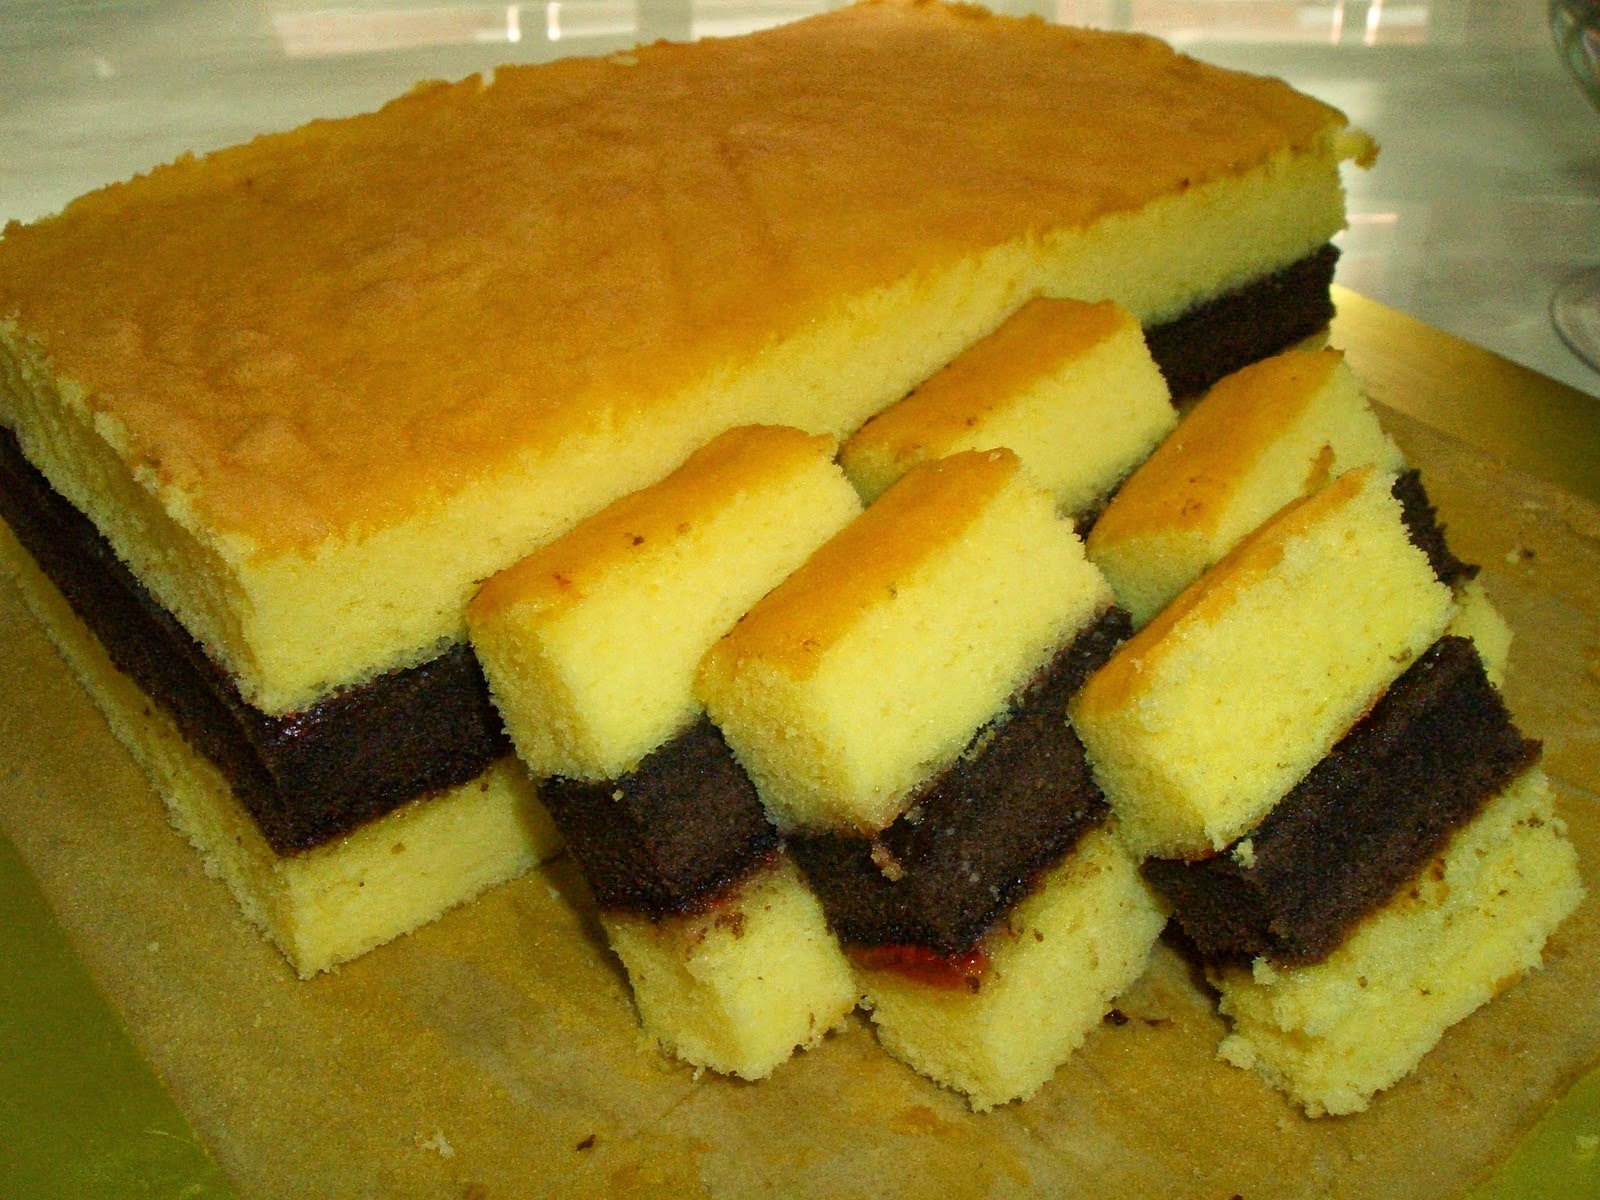 All About Resep Fomac Powerpack Kue Kukus Lapis Coklat Keju By Produk Ukm Bumn Cheese Cake